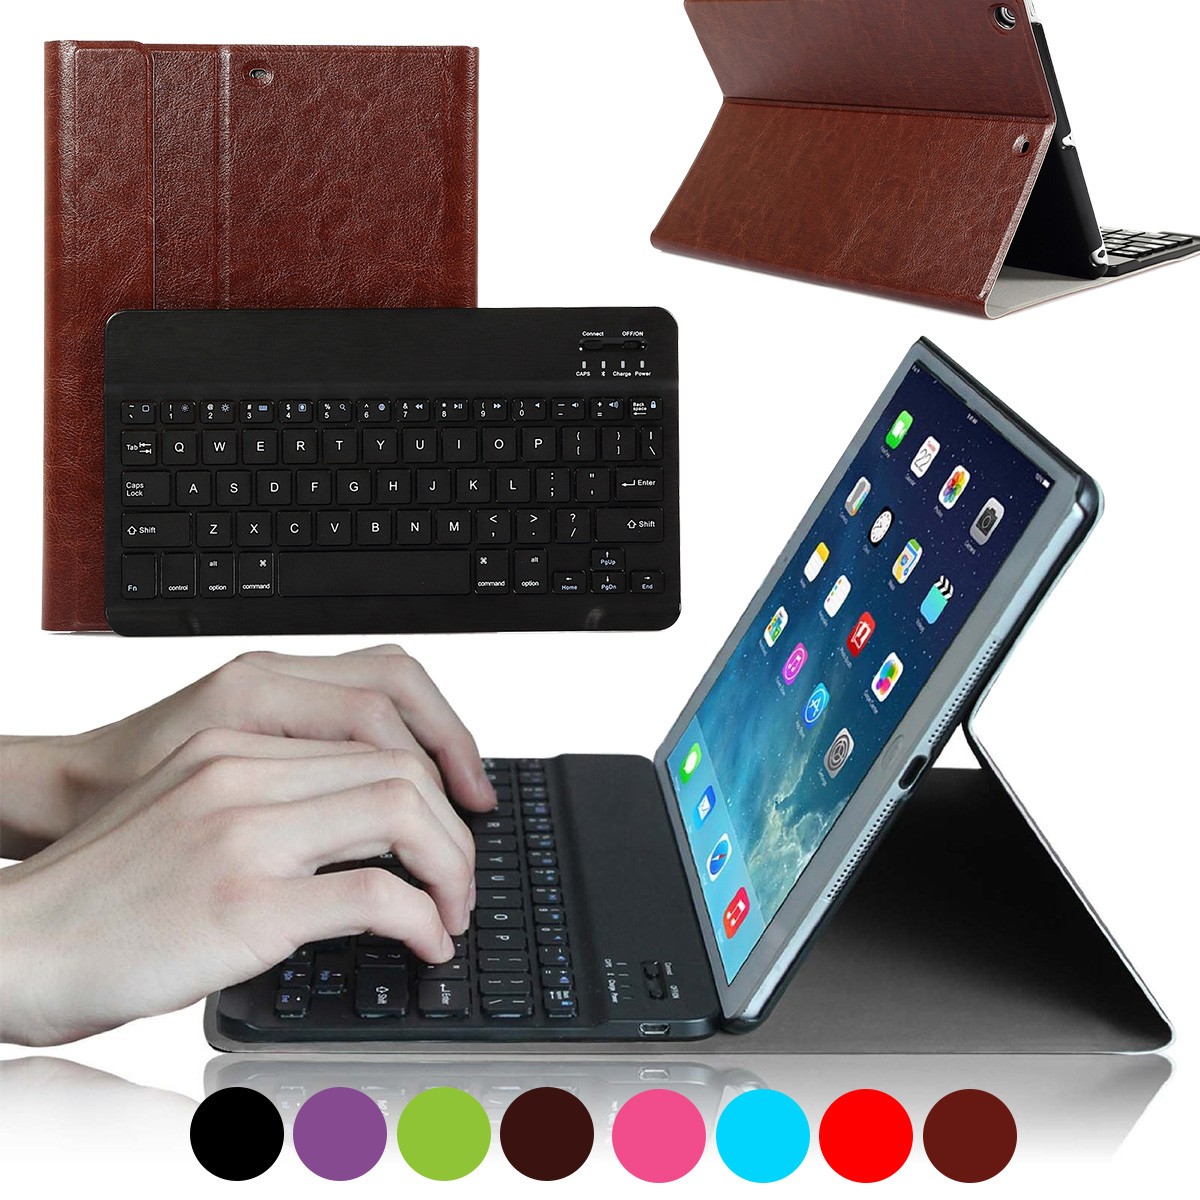 CoastaCloud Bluetooth Keyboard FOR NEW Apple iPad 2017/ipad air 1 Wireless Removeable Keyboard 9.7 inch with Stand Folio Case Cover Rechargeable USB Cable PU Leather